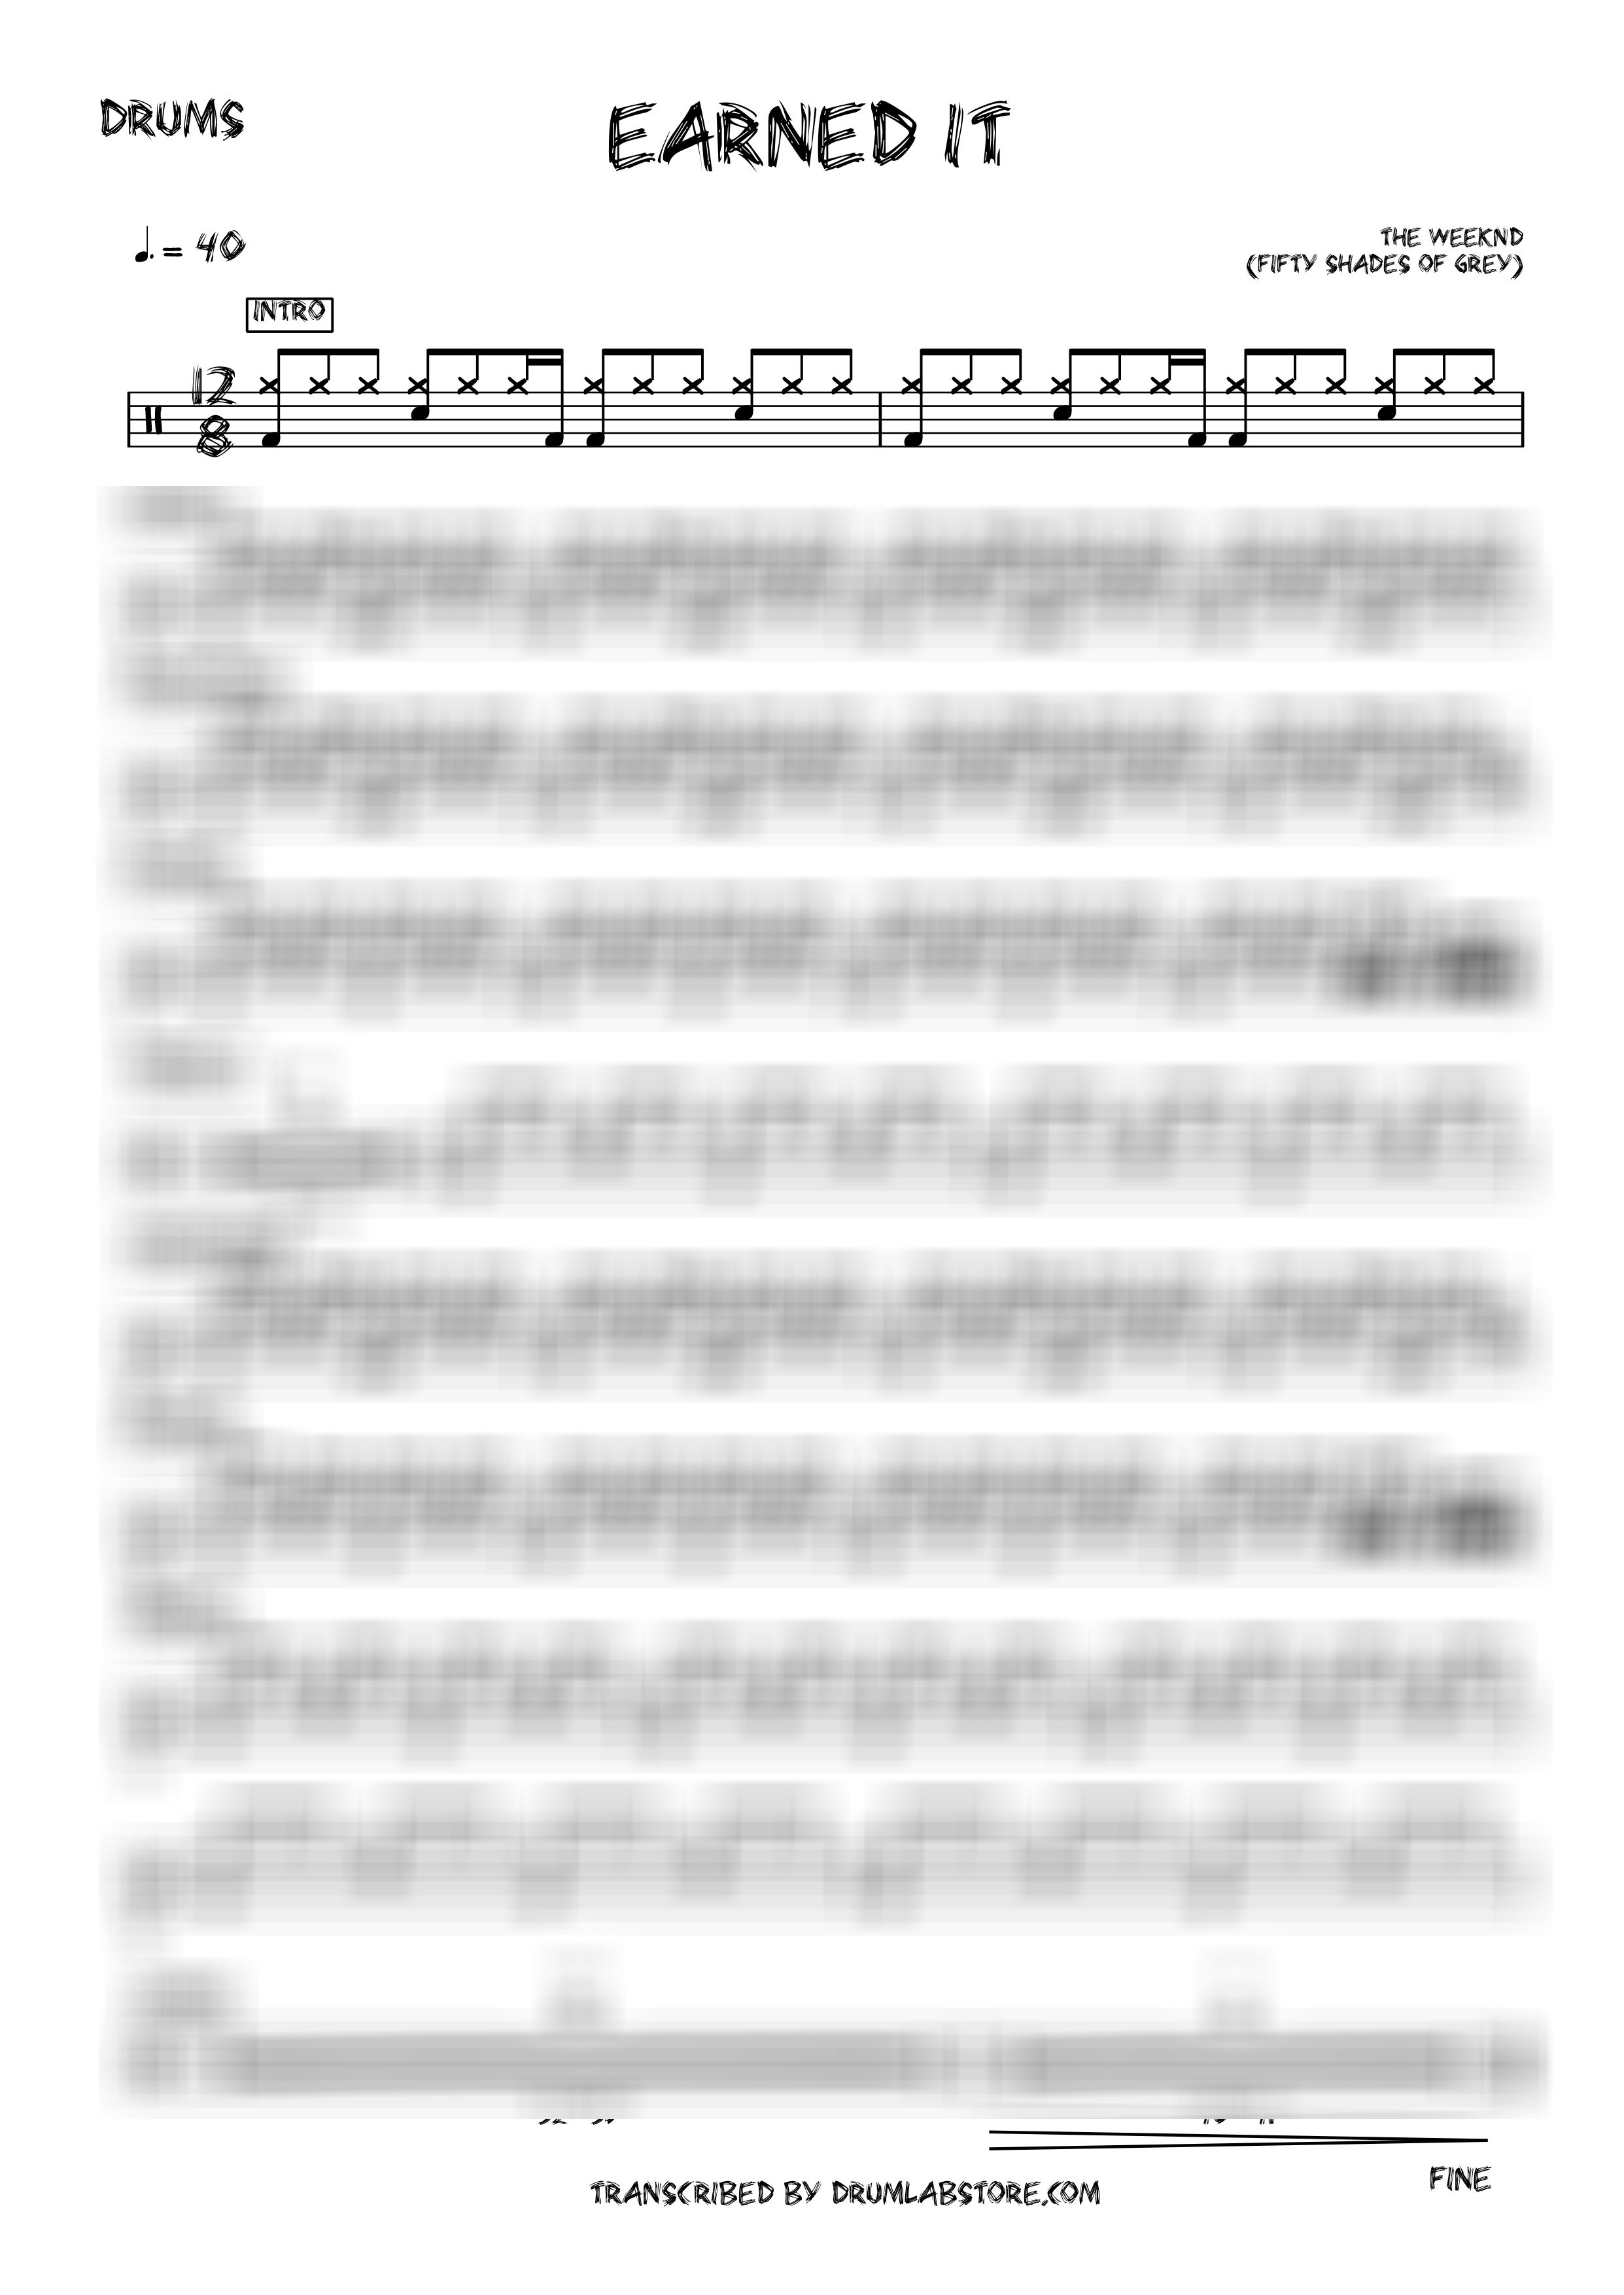 The Weeknd Earned It 50 Shades Of Grey Drum Sheet Music Drums